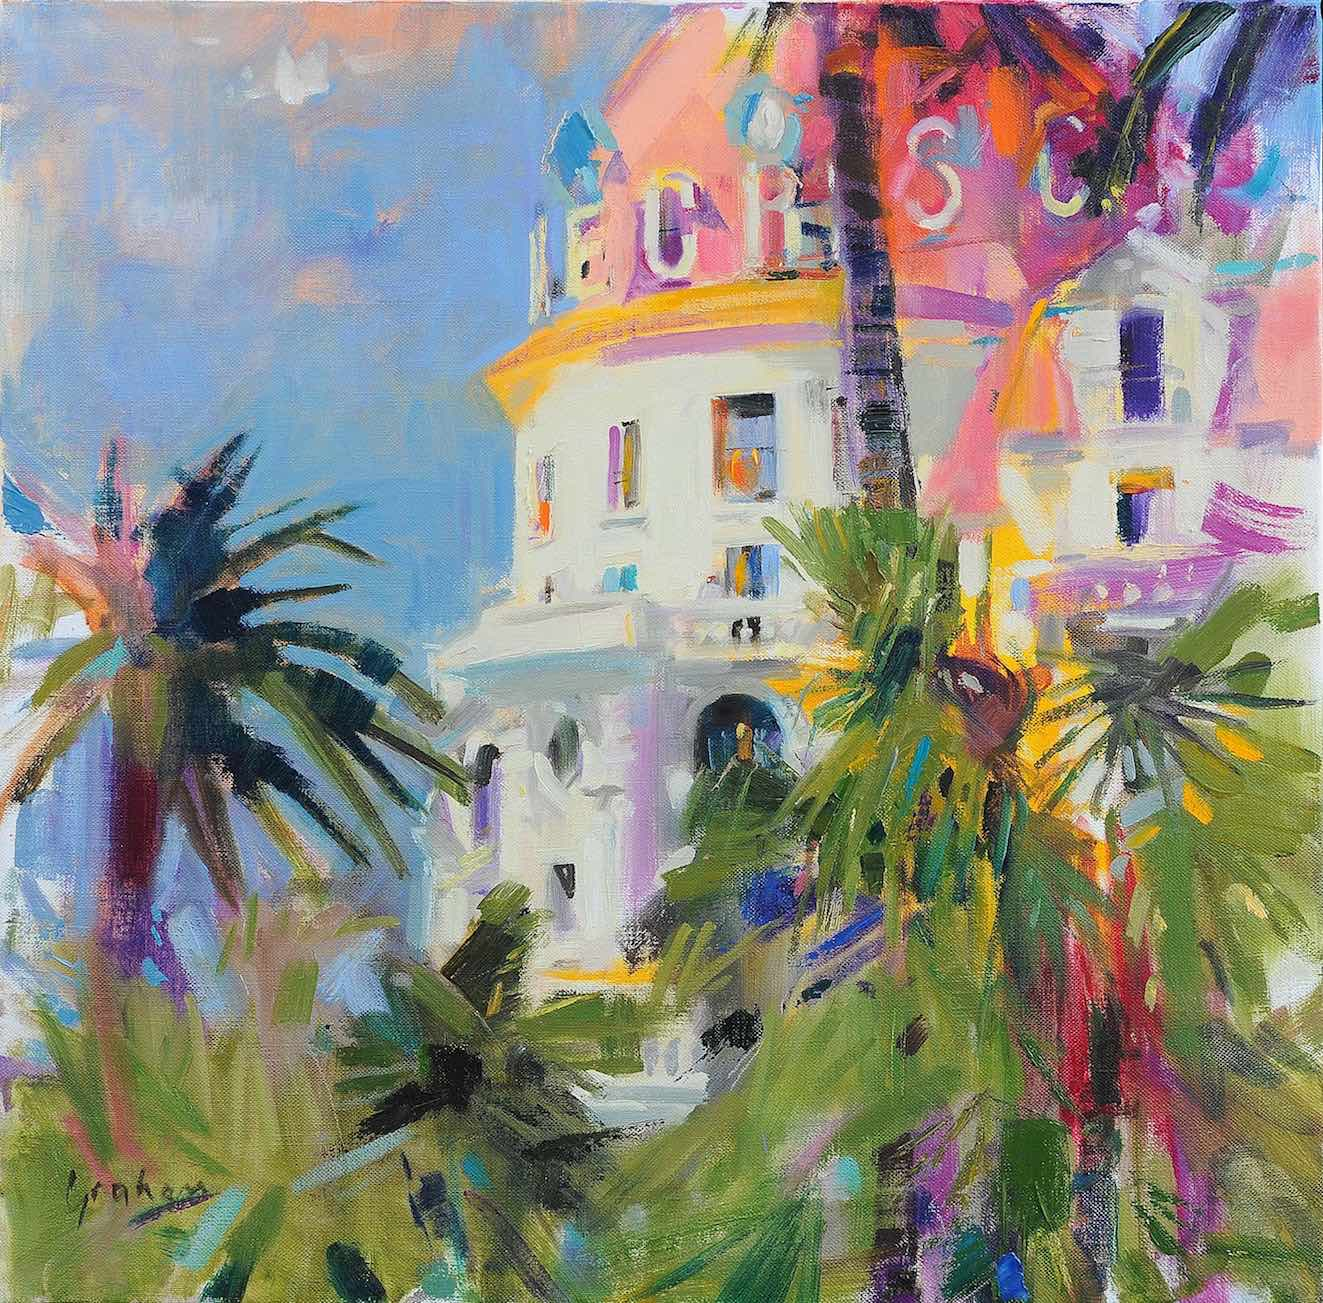 "<span class=""link fancybox-details-link""><a href=""/artists/31-peter-graham/works/2870-peter-graham-jardin-massena-nice/"">View Detail Page</a></span><div class=""artist""><strong>Peter Graham</strong></div> <div class=""title""><em>Jardin Massena, Nice</em></div> <div class=""medium"">Oil on Canvas </div> <div class=""dimensions"">61 x 61 cm </div><div class=""price"">£5,850.00</div>"